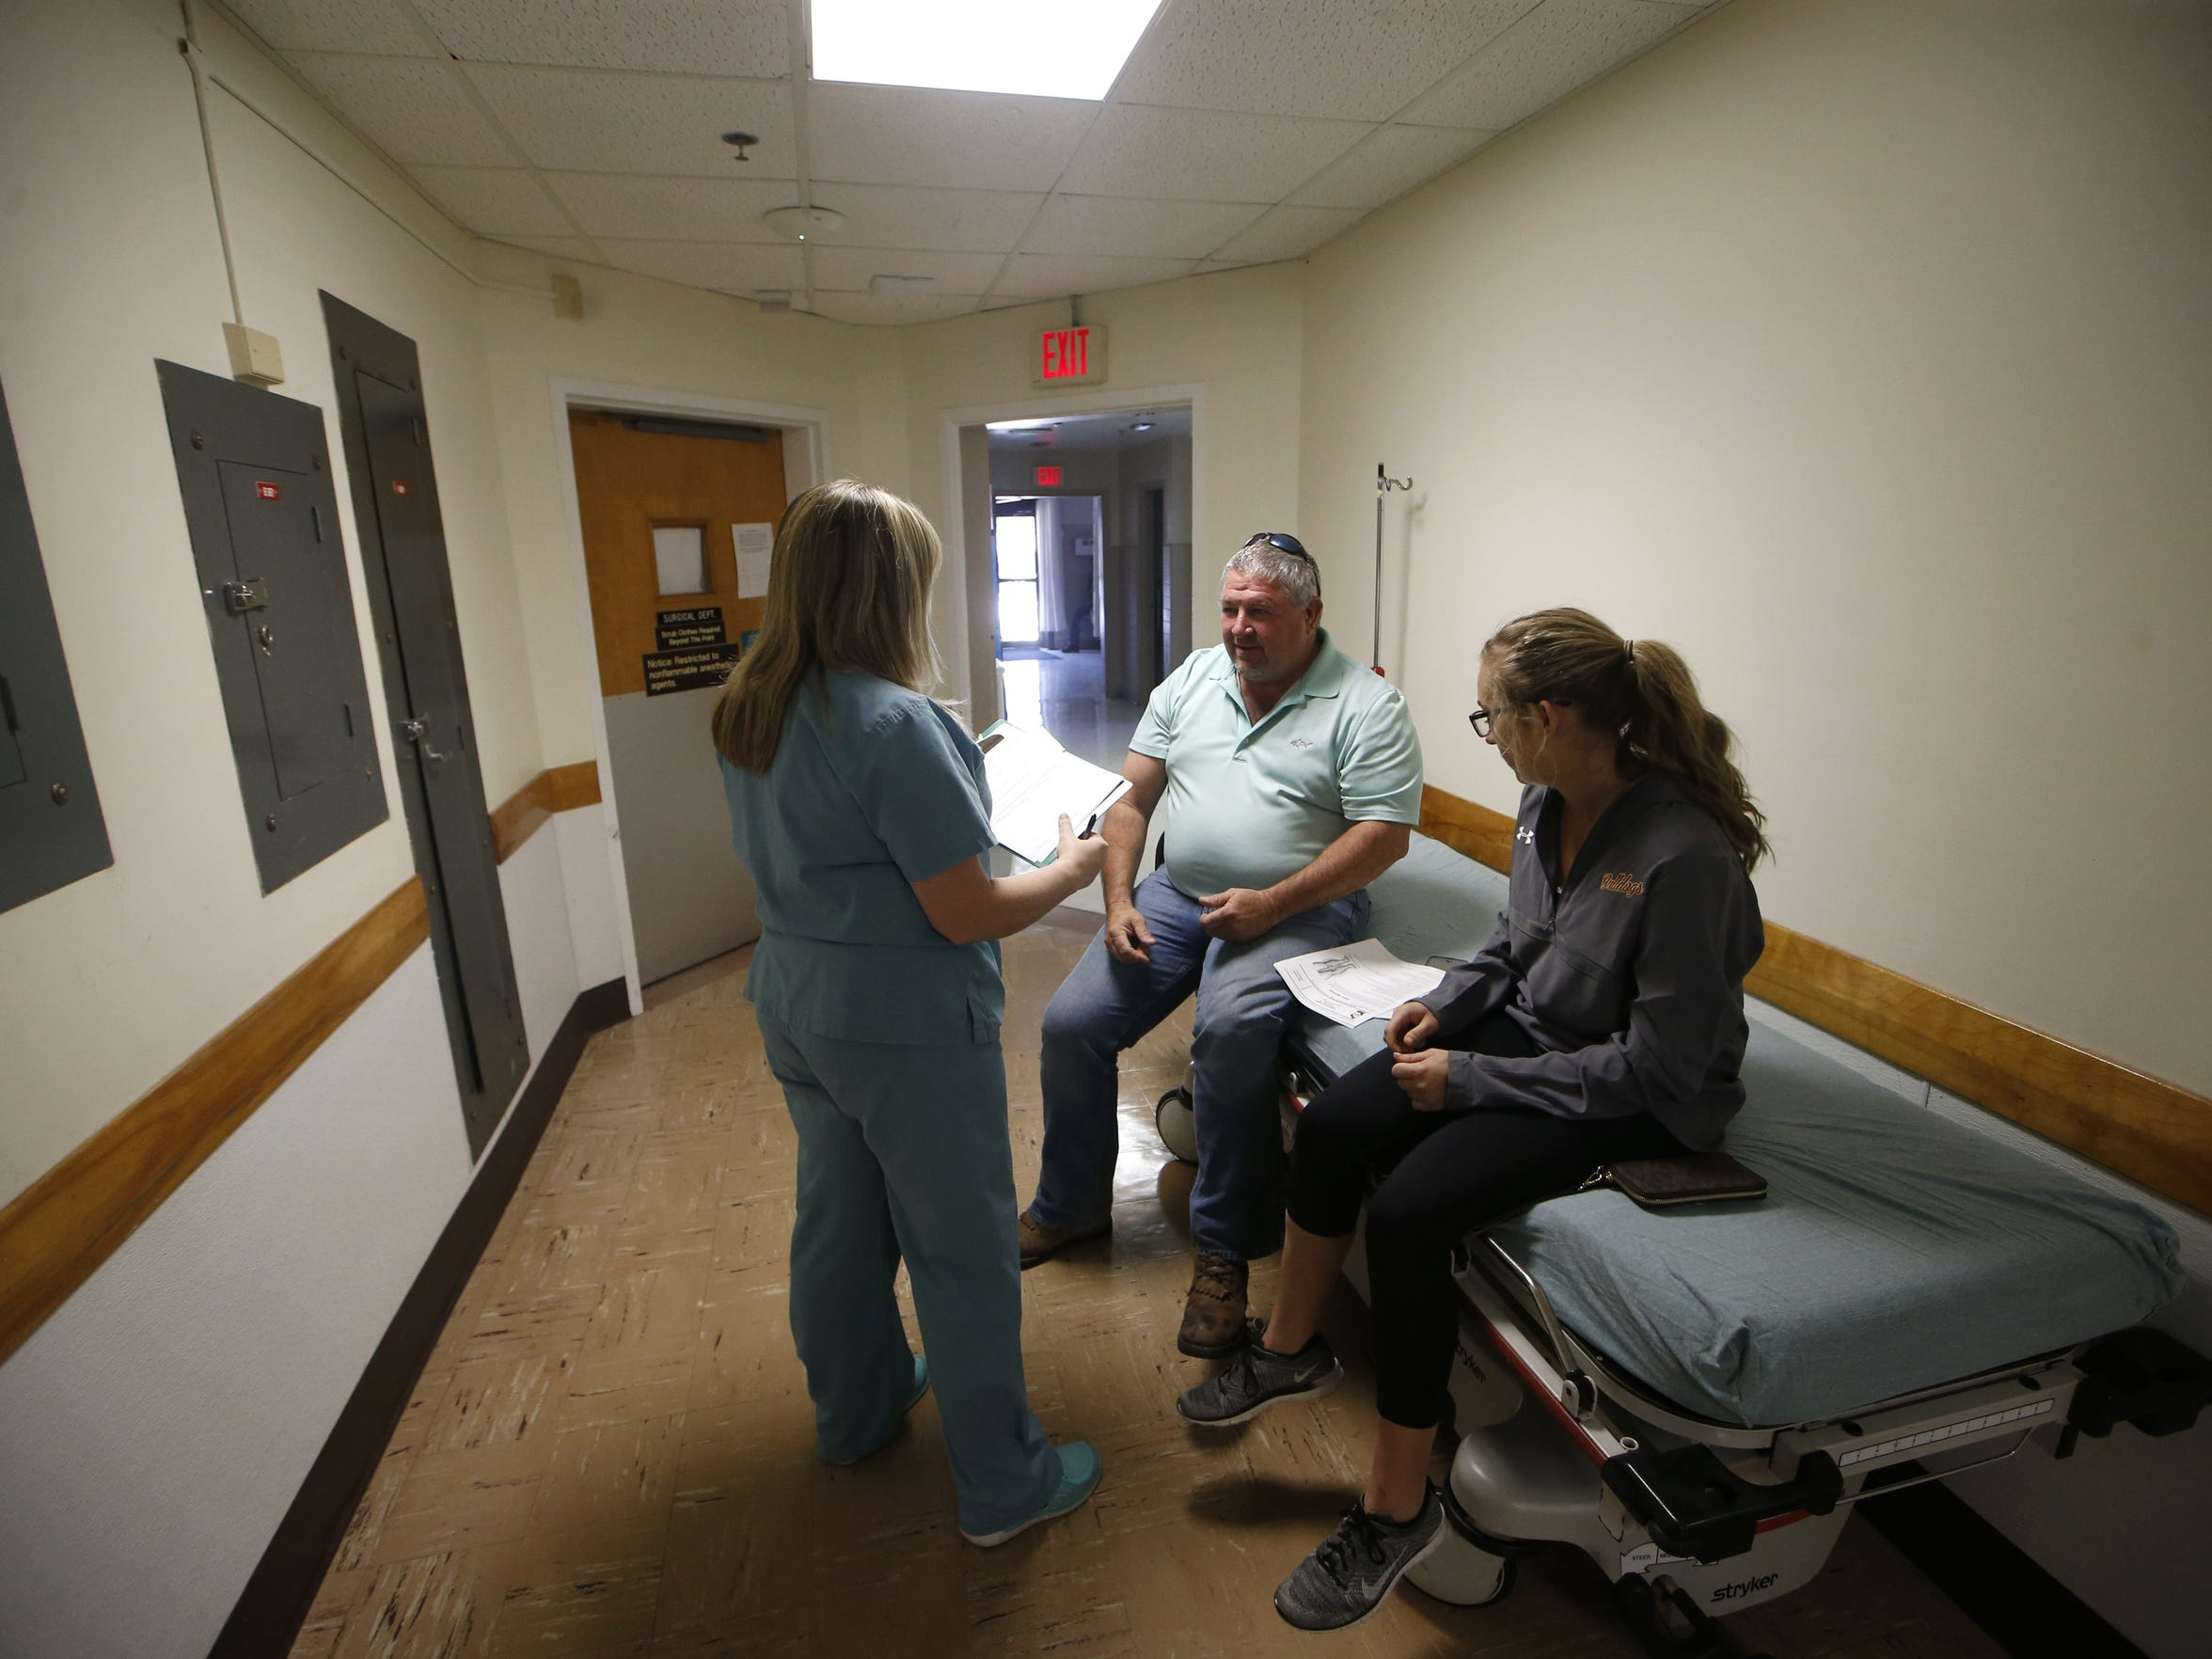 Hanna Bailey, 16, and her father Andy talk to Licensed Practical Nurse Delynda Bailey, who is related by marriage to the family, about Hanna's knee injury to see if she can be cleared to play softball later that afternoon on Friday, Feb. 19, 2016. The phrase of 'there are no strangers in this town' was a common one inside the hospital walls.